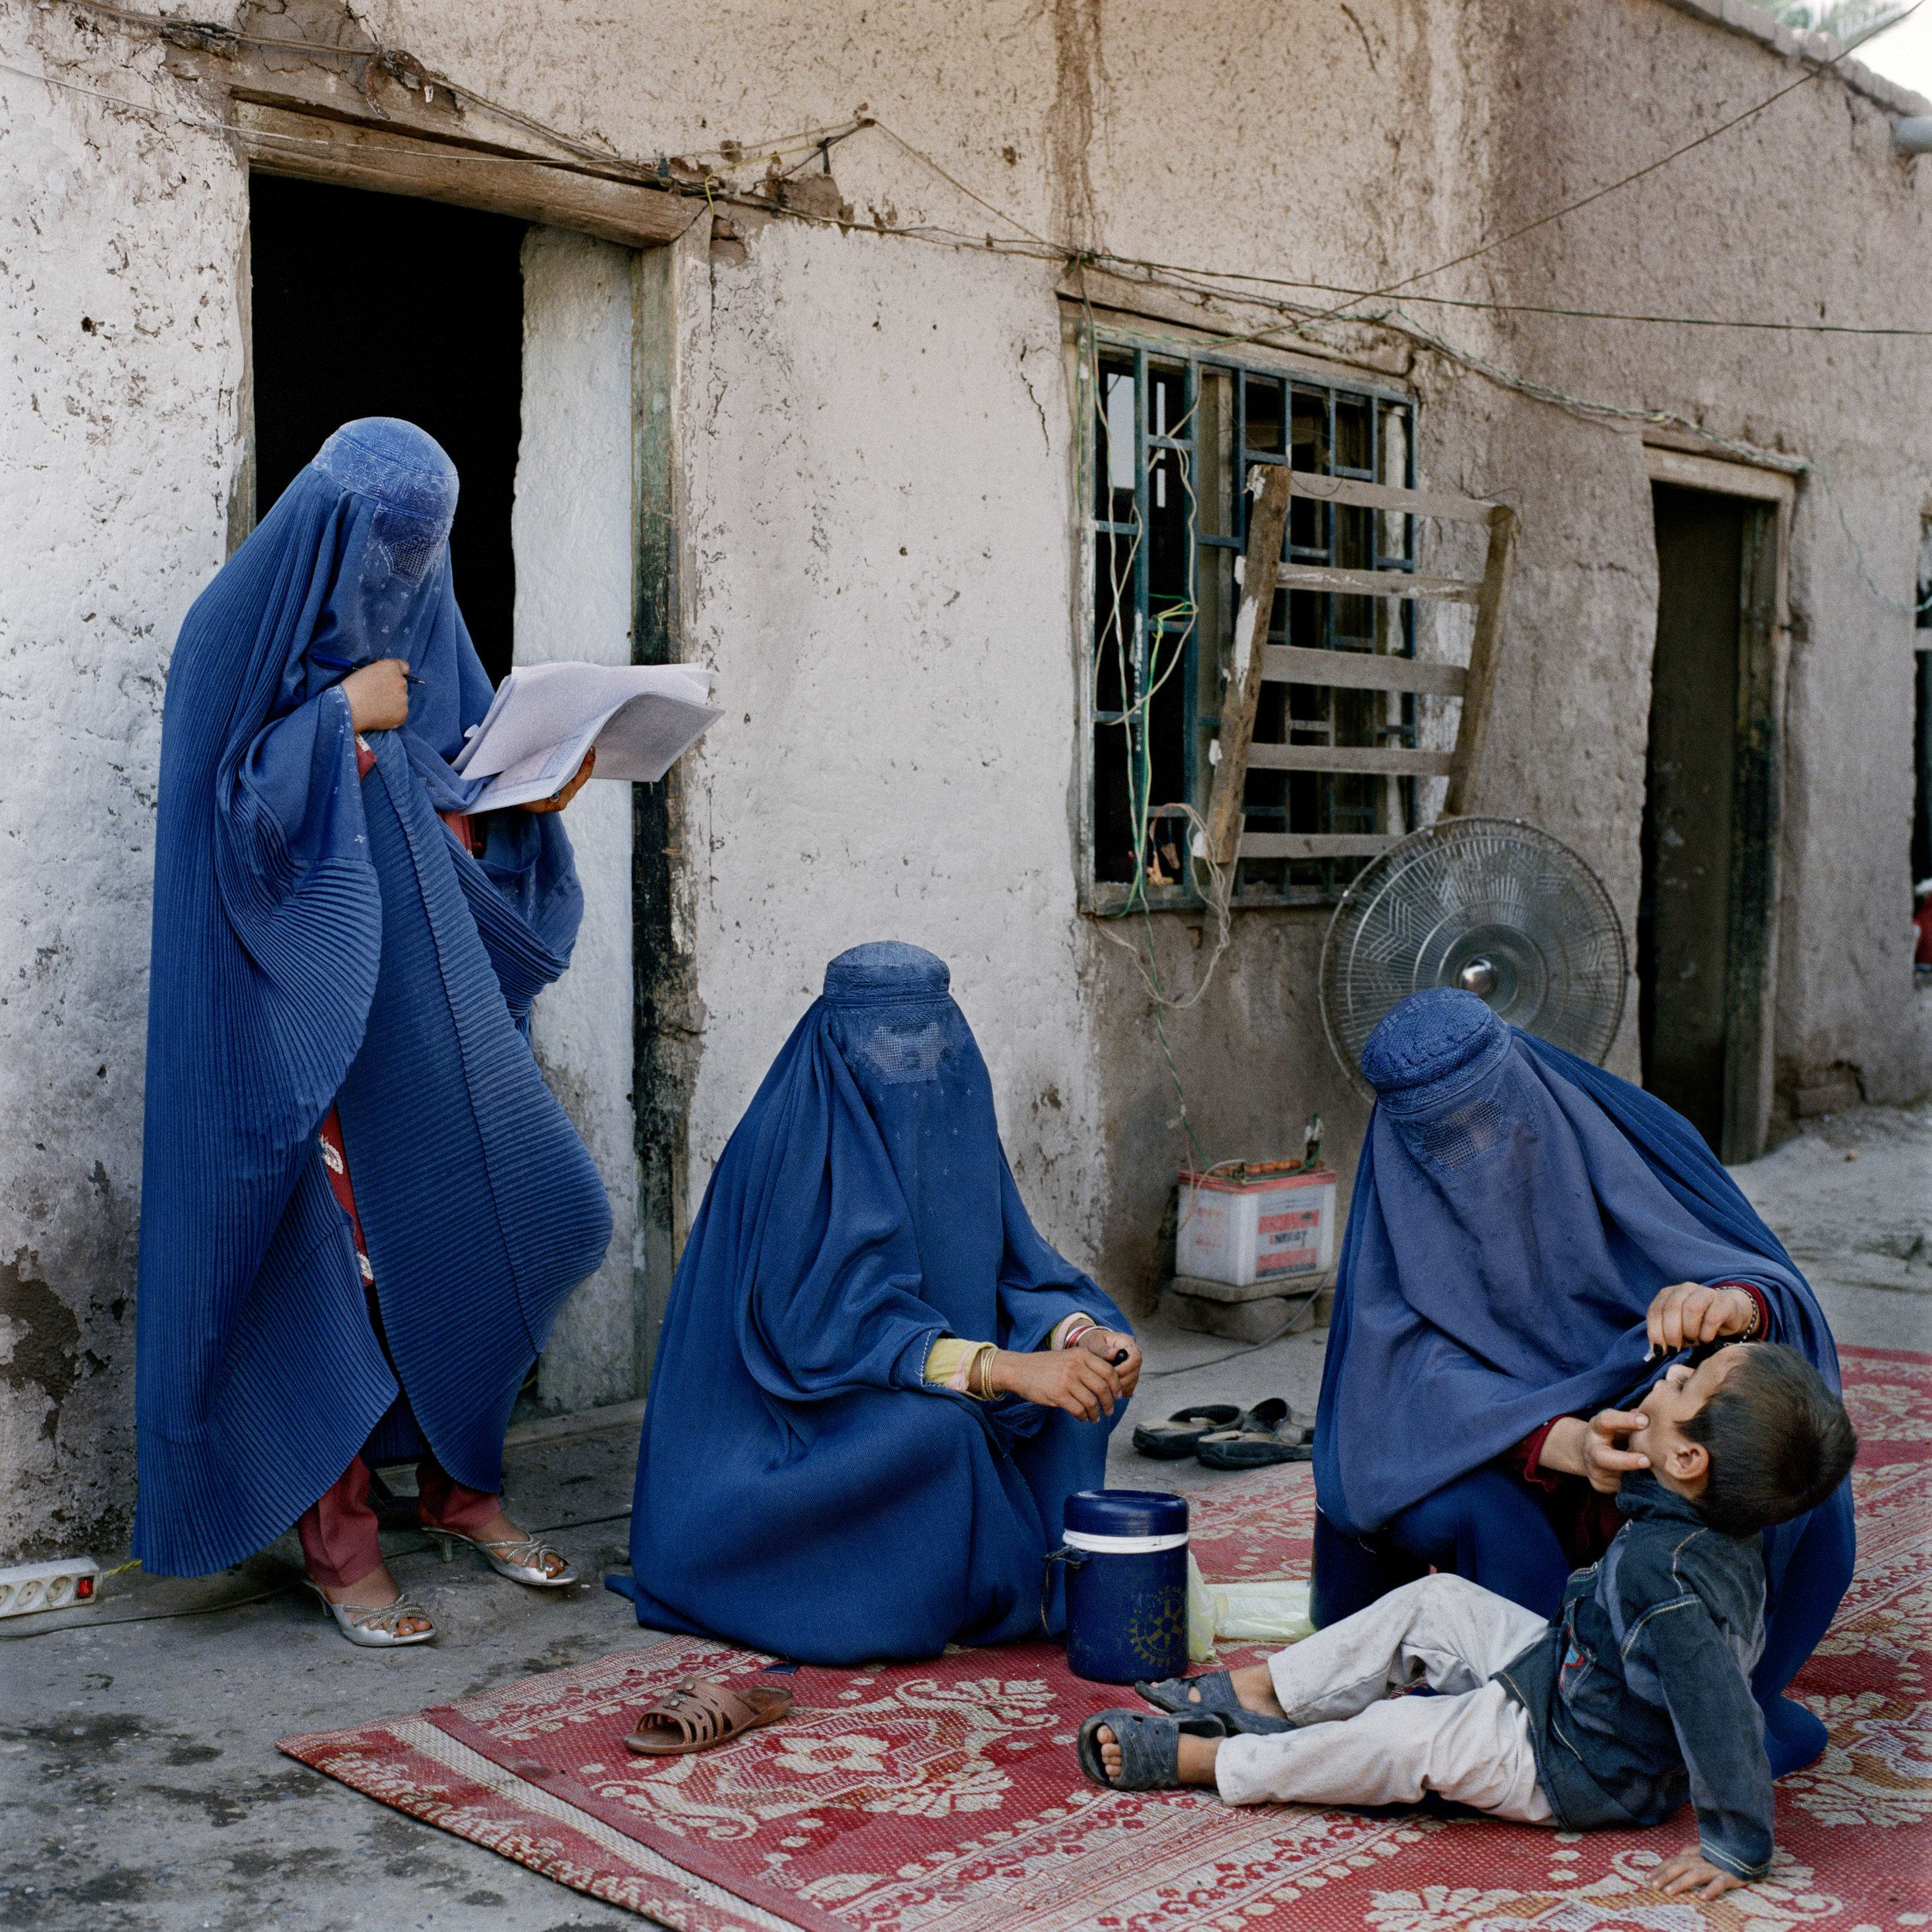 The Surge - Polio Eradication in Afghanistan